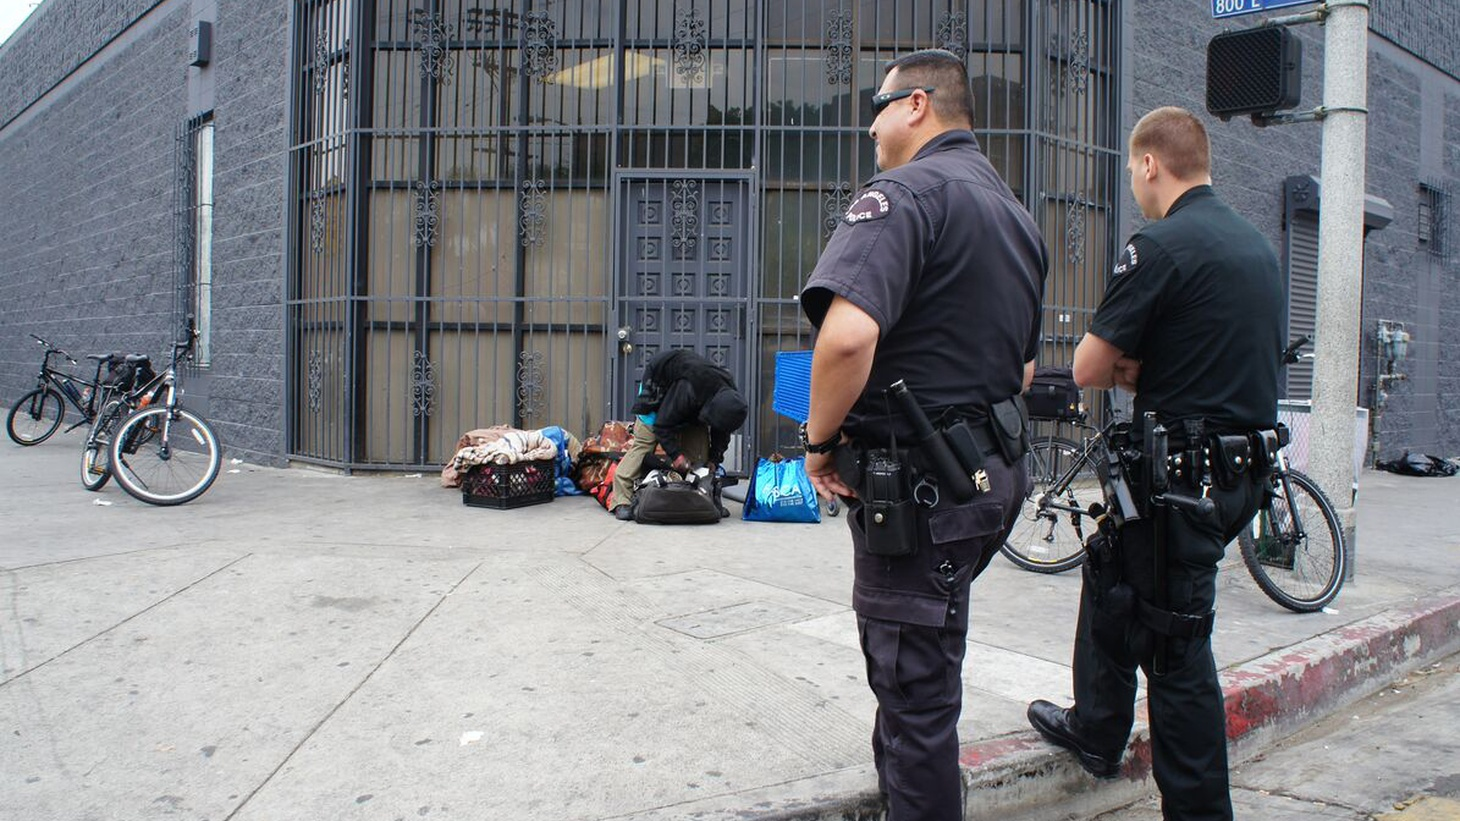 LA's homeless population is on the increase, especially downtown and in Venice. As those neighborhoods gentrify, complaints about unsafe and unsightly homeless encampments are increasing, too. Now the City Council is making it easier to break up those encampments — in the process making it harder for the homeless to keep track of what possessions they have.